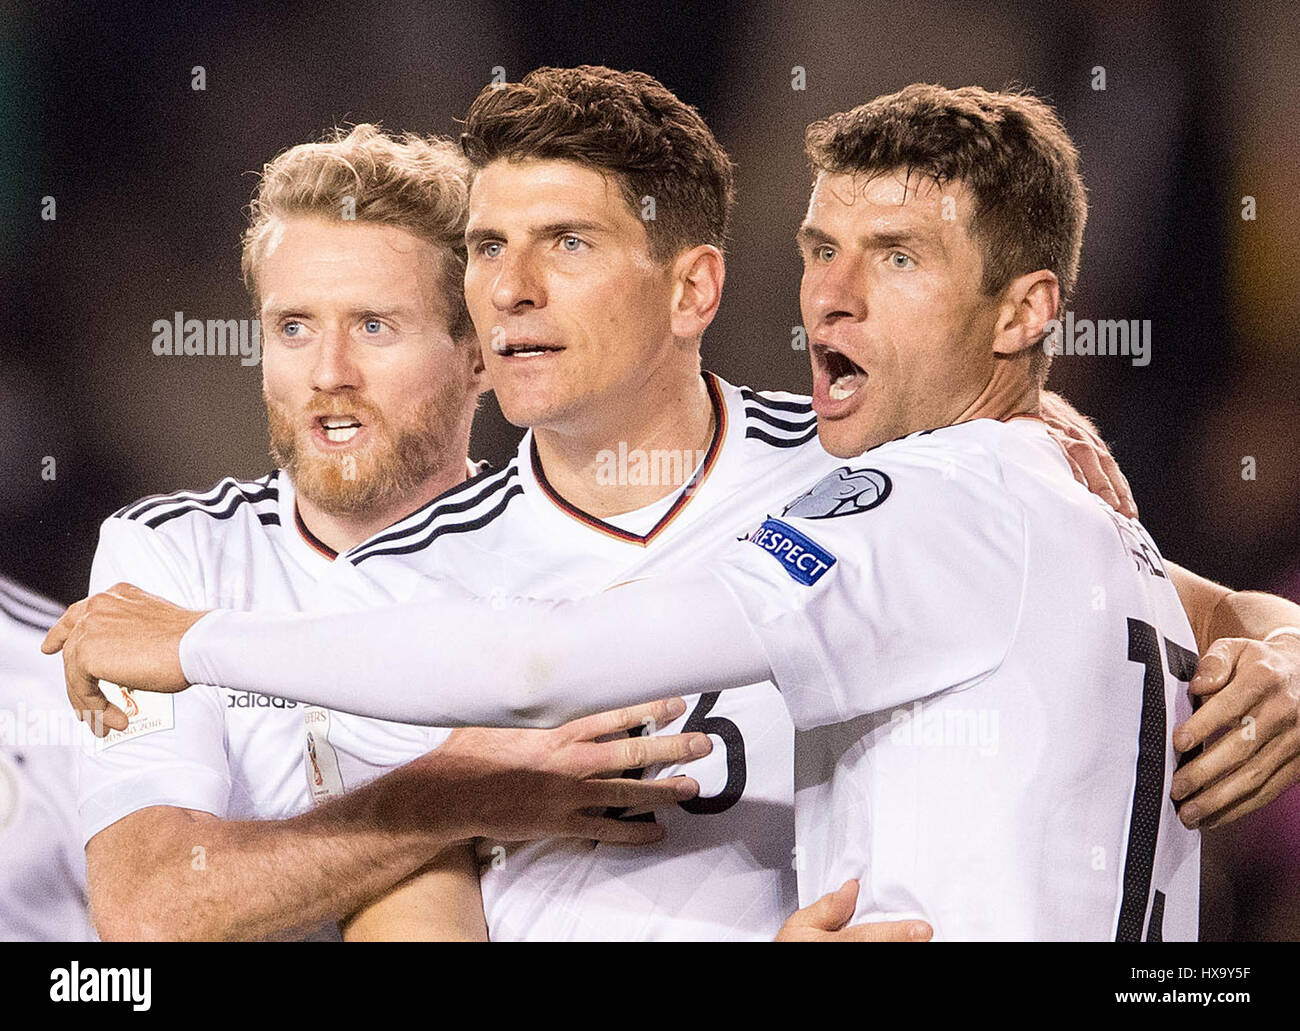 Baku, Azerbaijan. 26th Mar, 2017. Germany's Mario Gomez (C) celebrates his 3-1 goal with teammates Andre Schuerrle Stock Photo